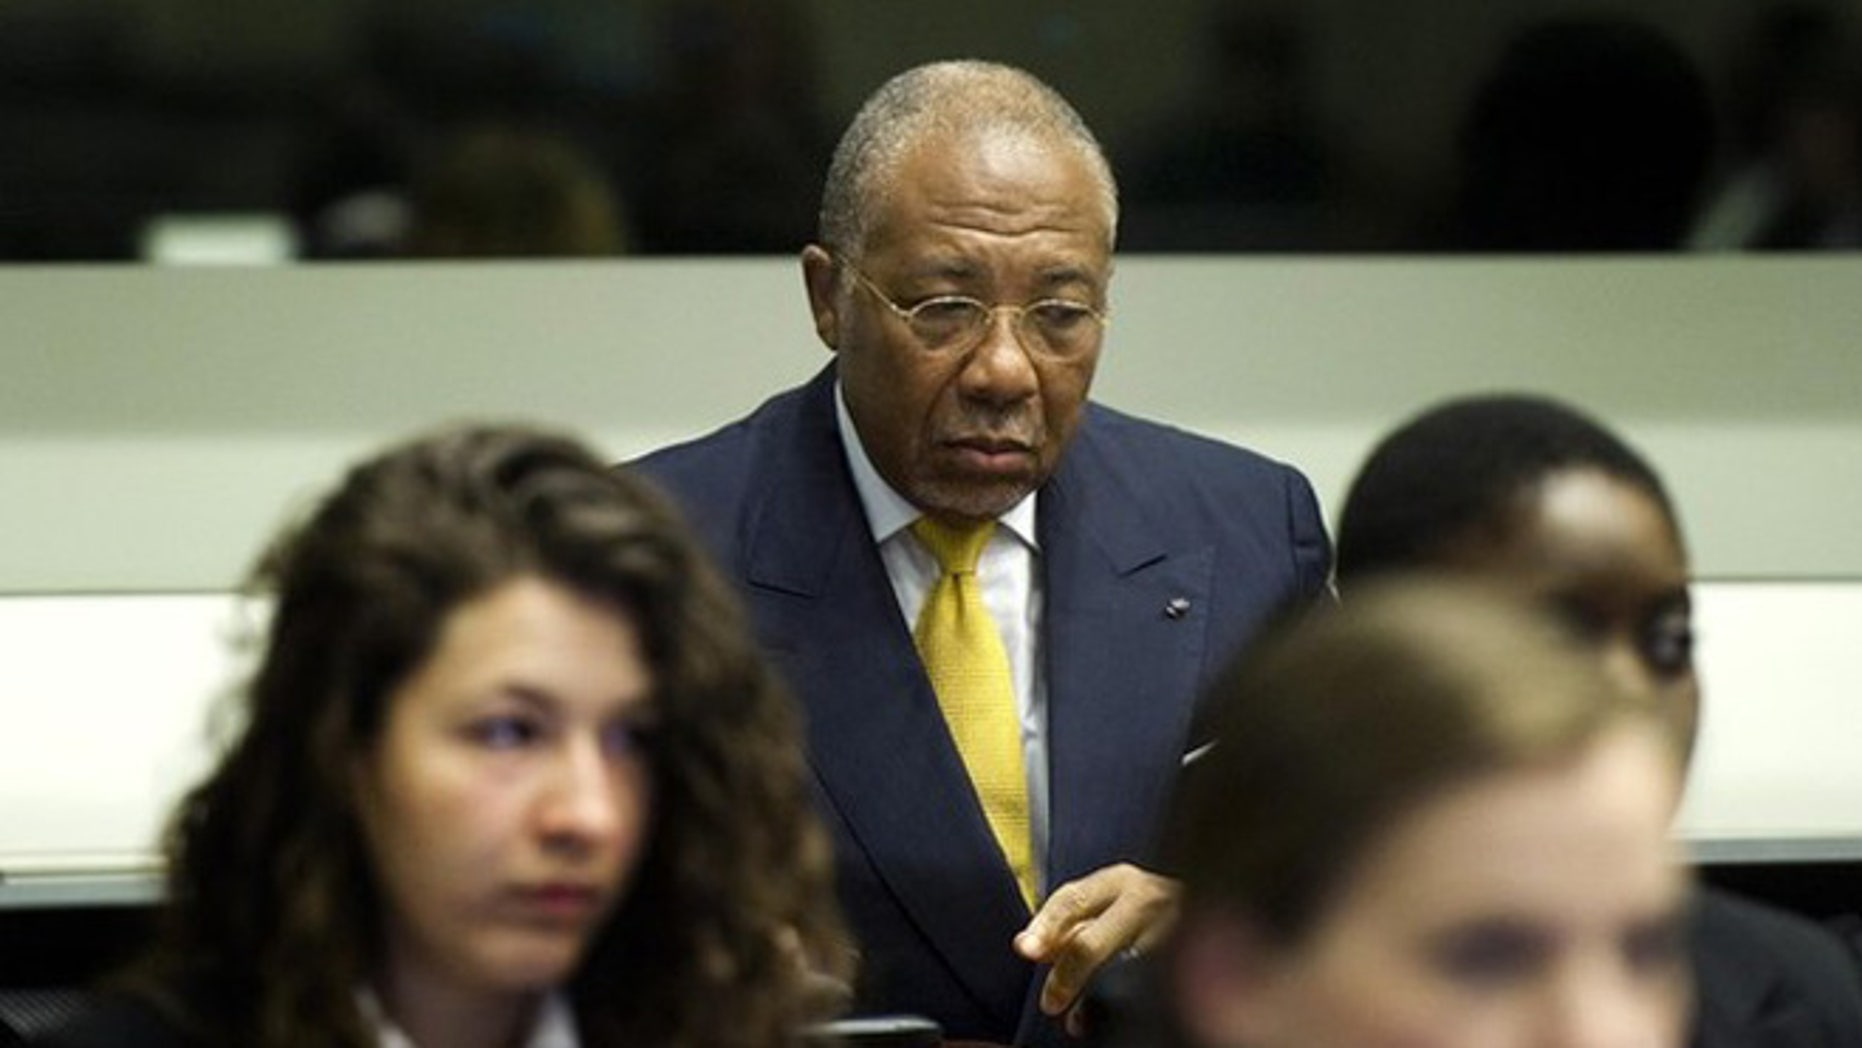 May 30, 2012: Former Liberian President Charles Taylor listens to the judge at the opening of the sentencing hearing near The Hague.